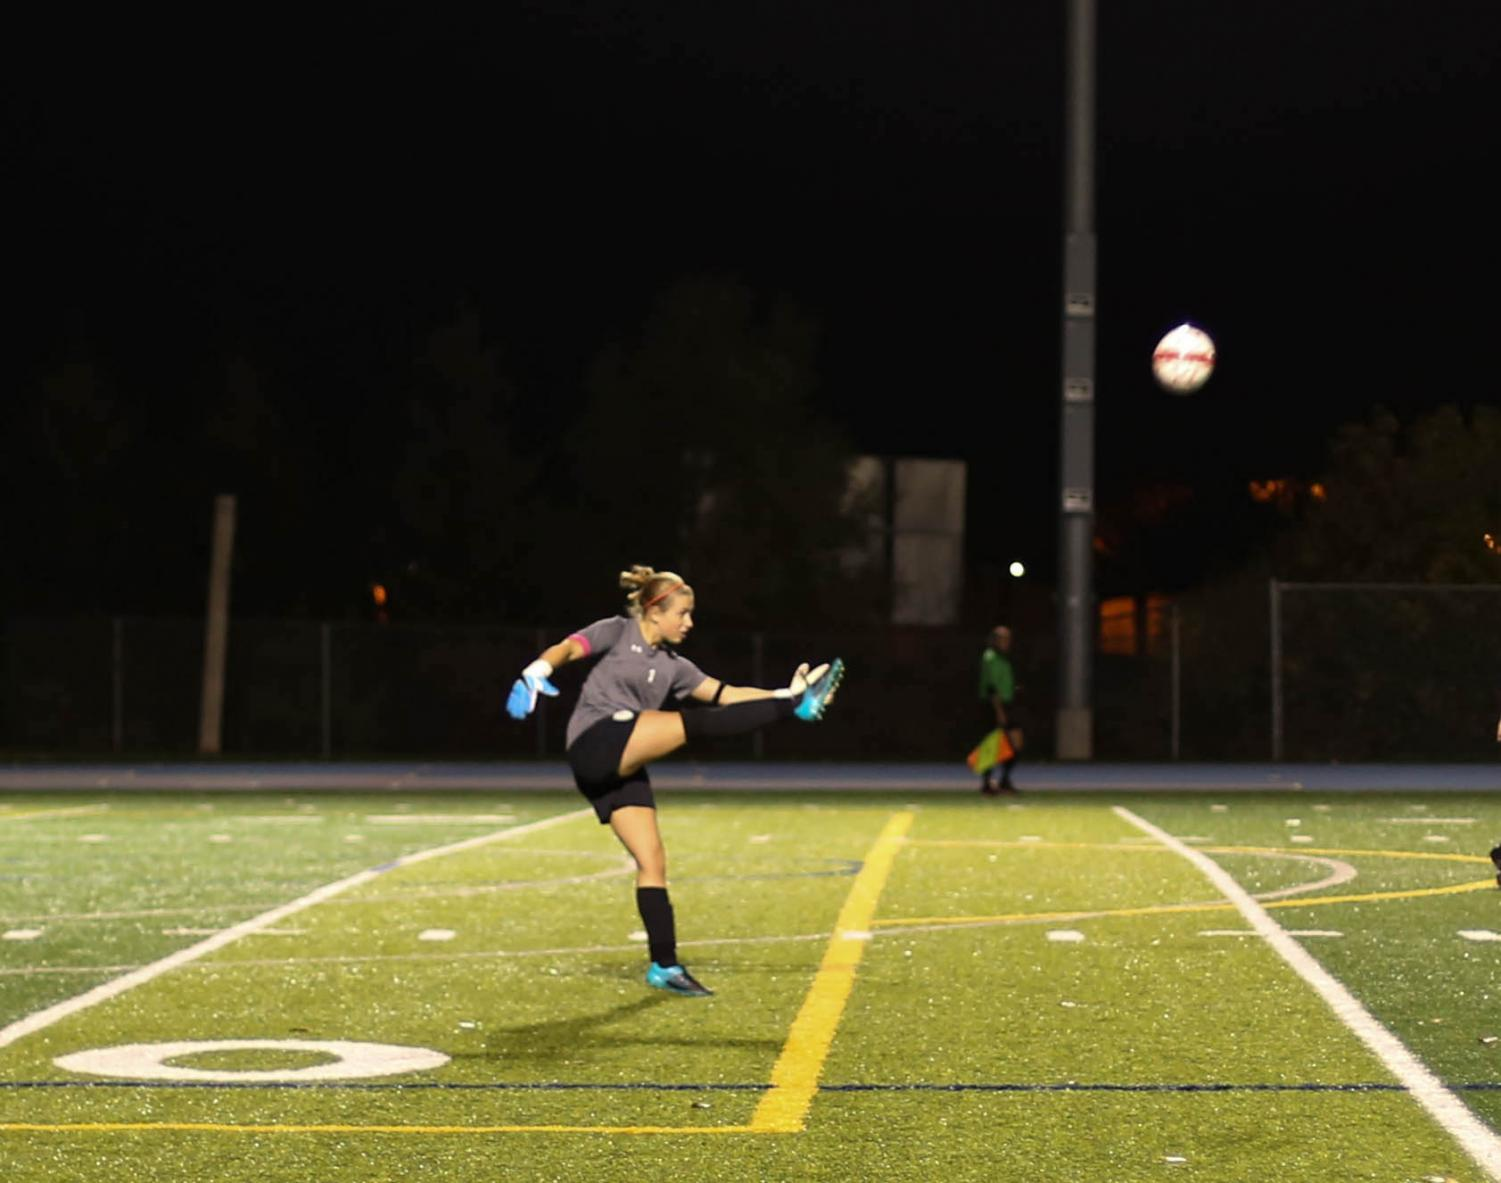 Senior captain and goalkeeper Claire Grazzini had an excellent season.